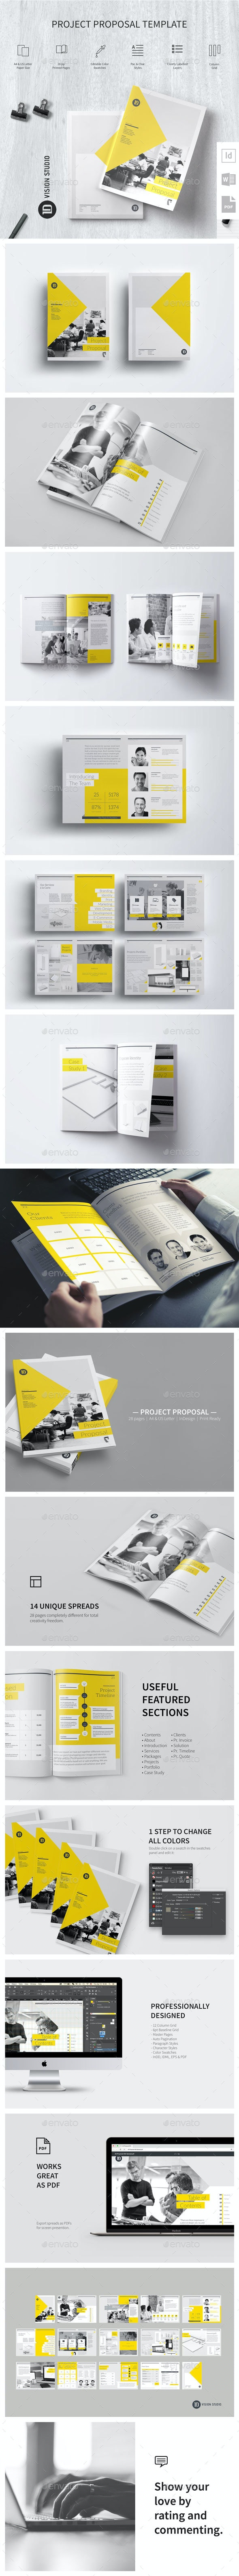 Project Proposal Template 002 - Proposals & Invoices Stationery